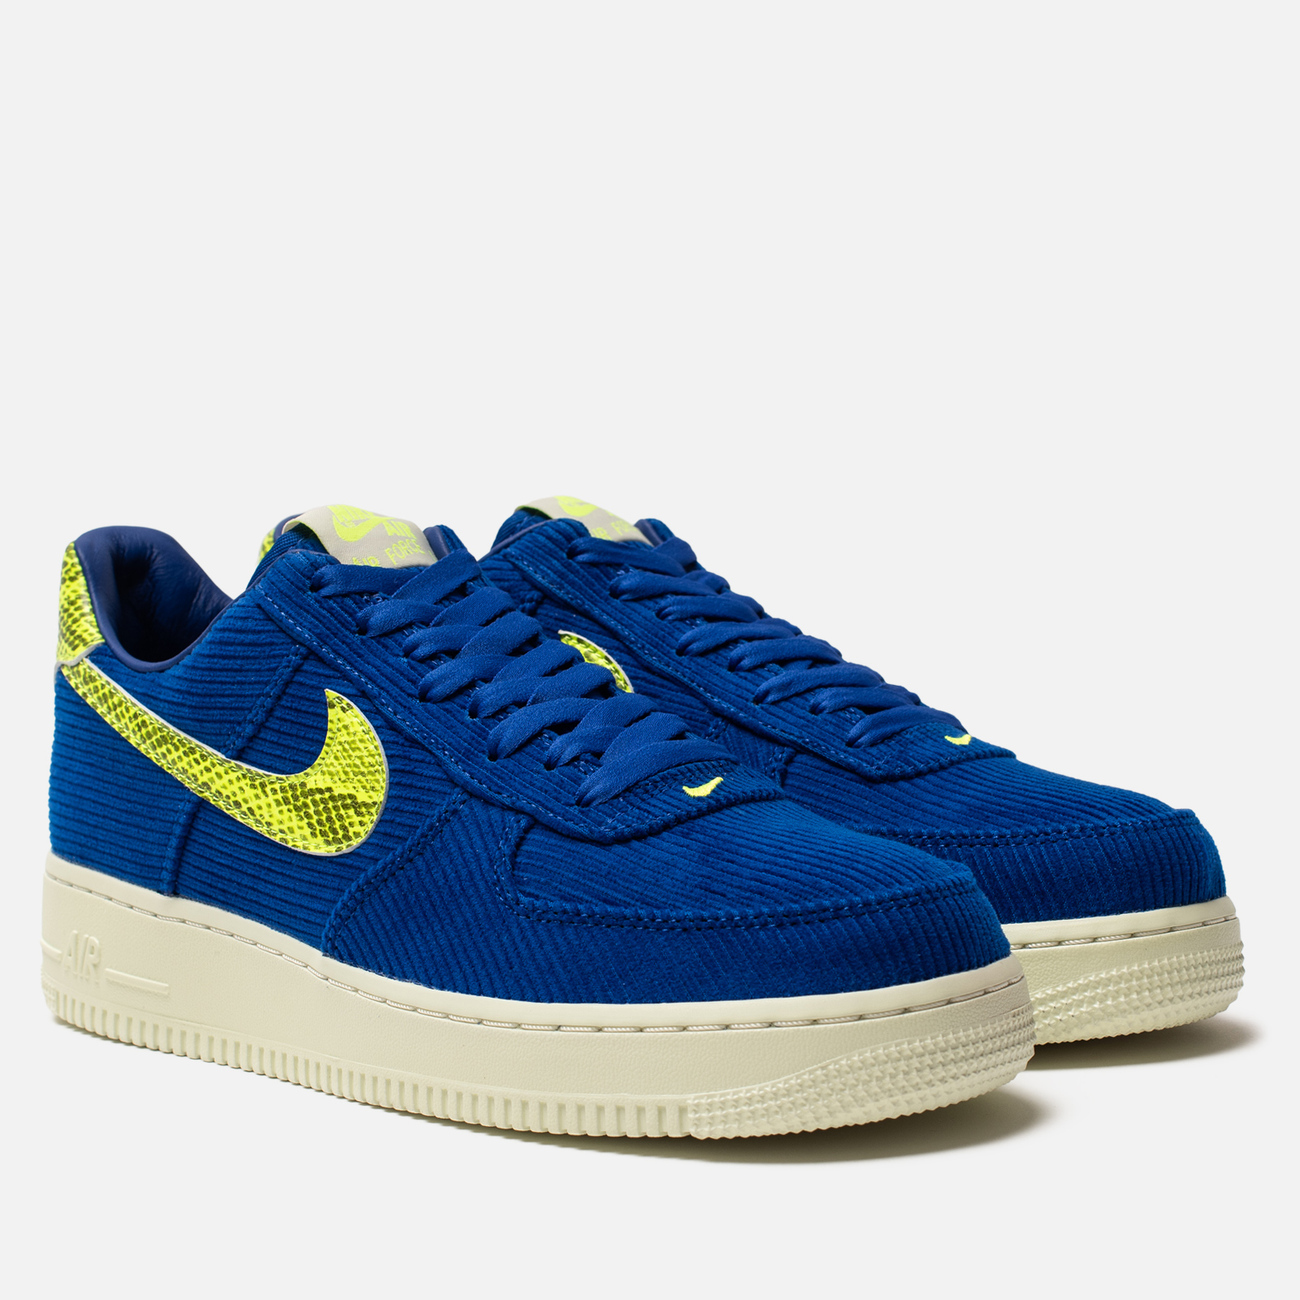 Мужские кроссовки Nike x Olivia Kim Air Force 1 '07 NXN No Cover Hyper Blue/Volt/Sail